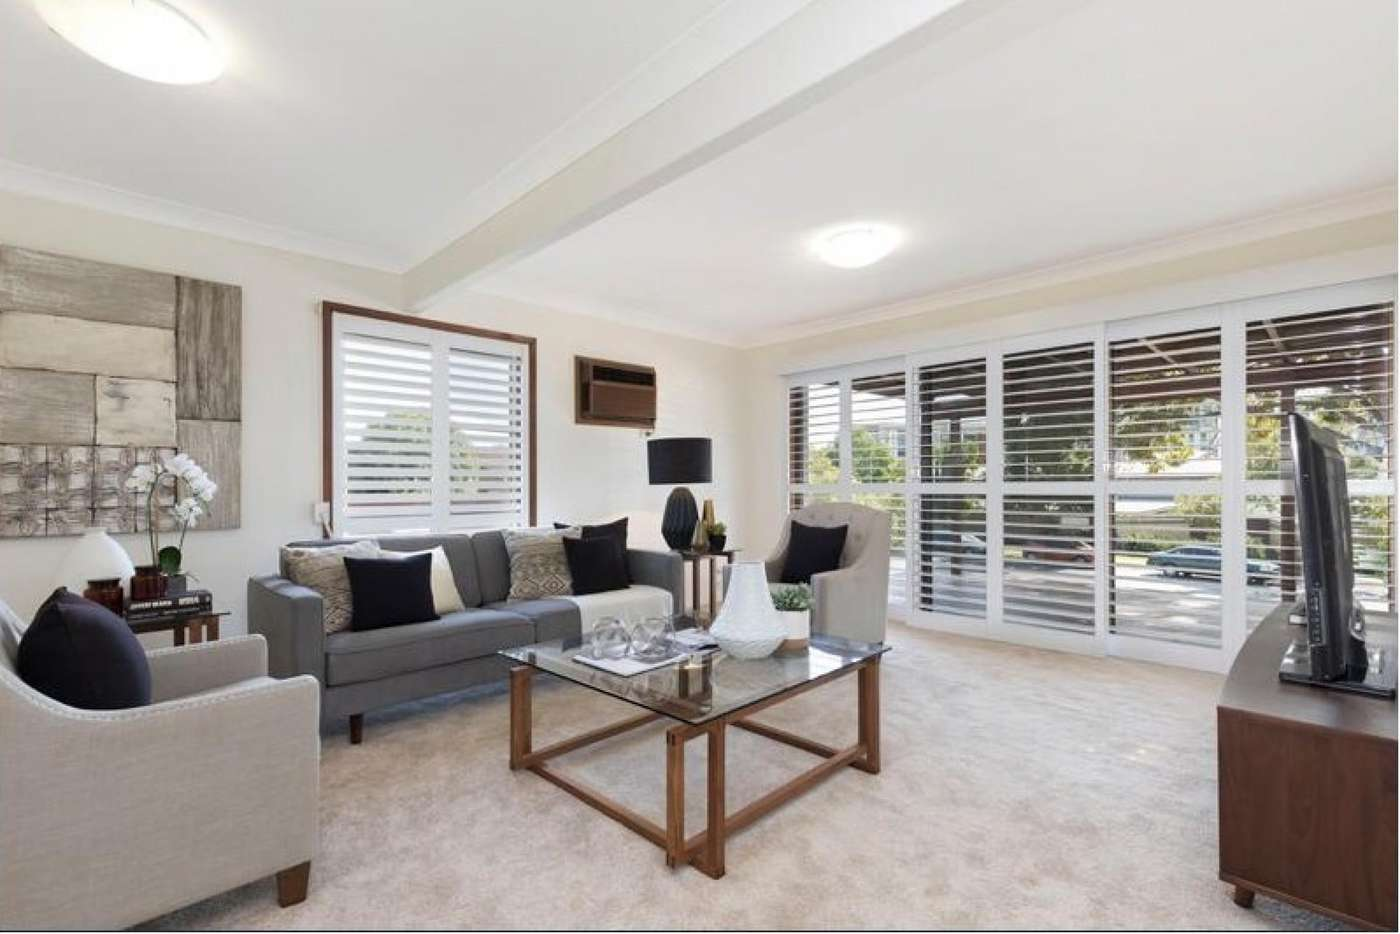 Seventh view of Homely house listing, 2 DONNINGTON STREET, Carindale QLD 4152